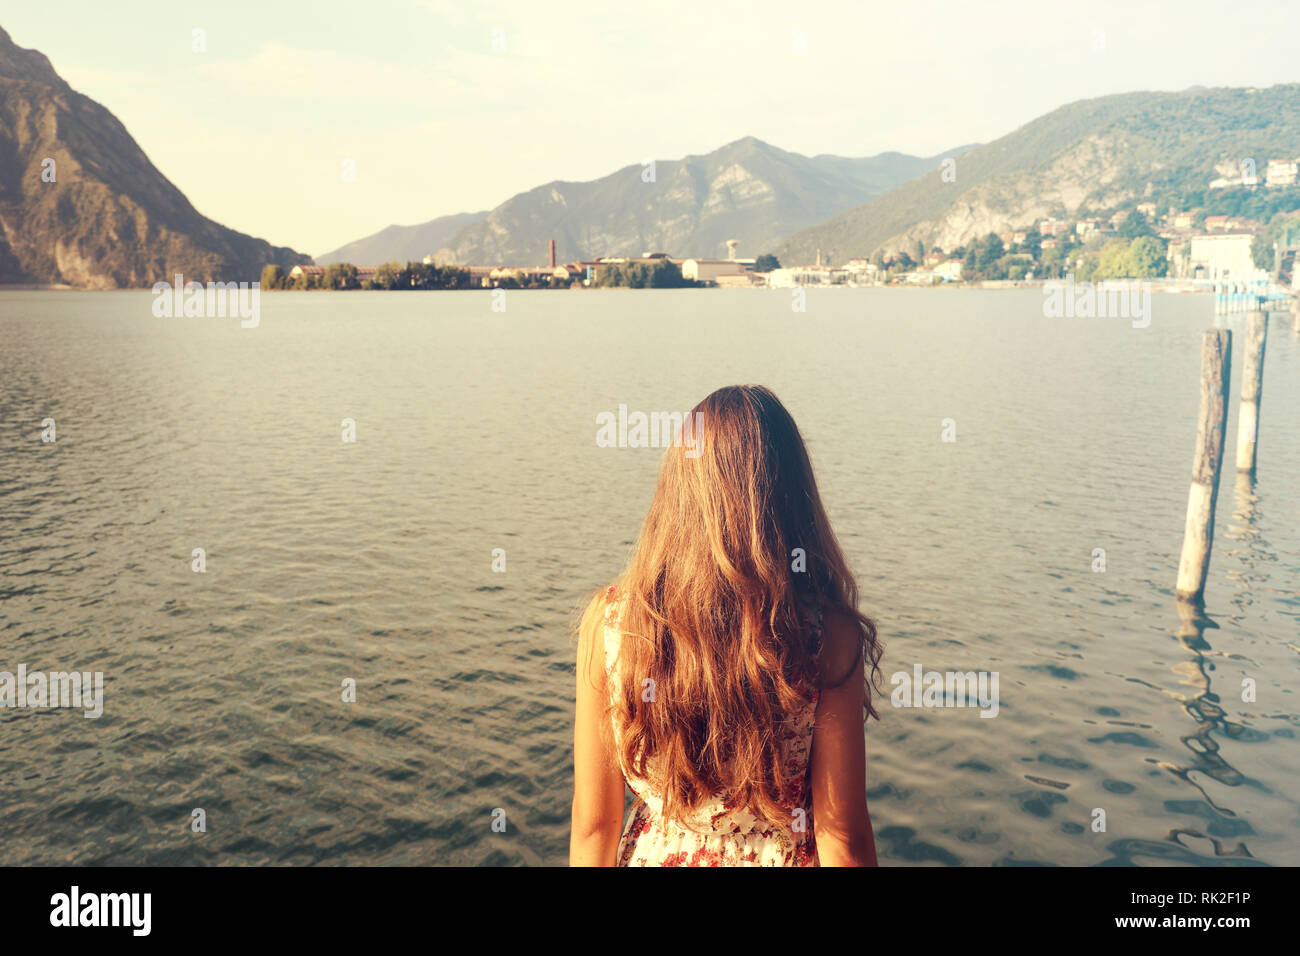 Attractive girl standing backwards and watching nature. Woman back view on lake. Vintage filter. - Stock Image